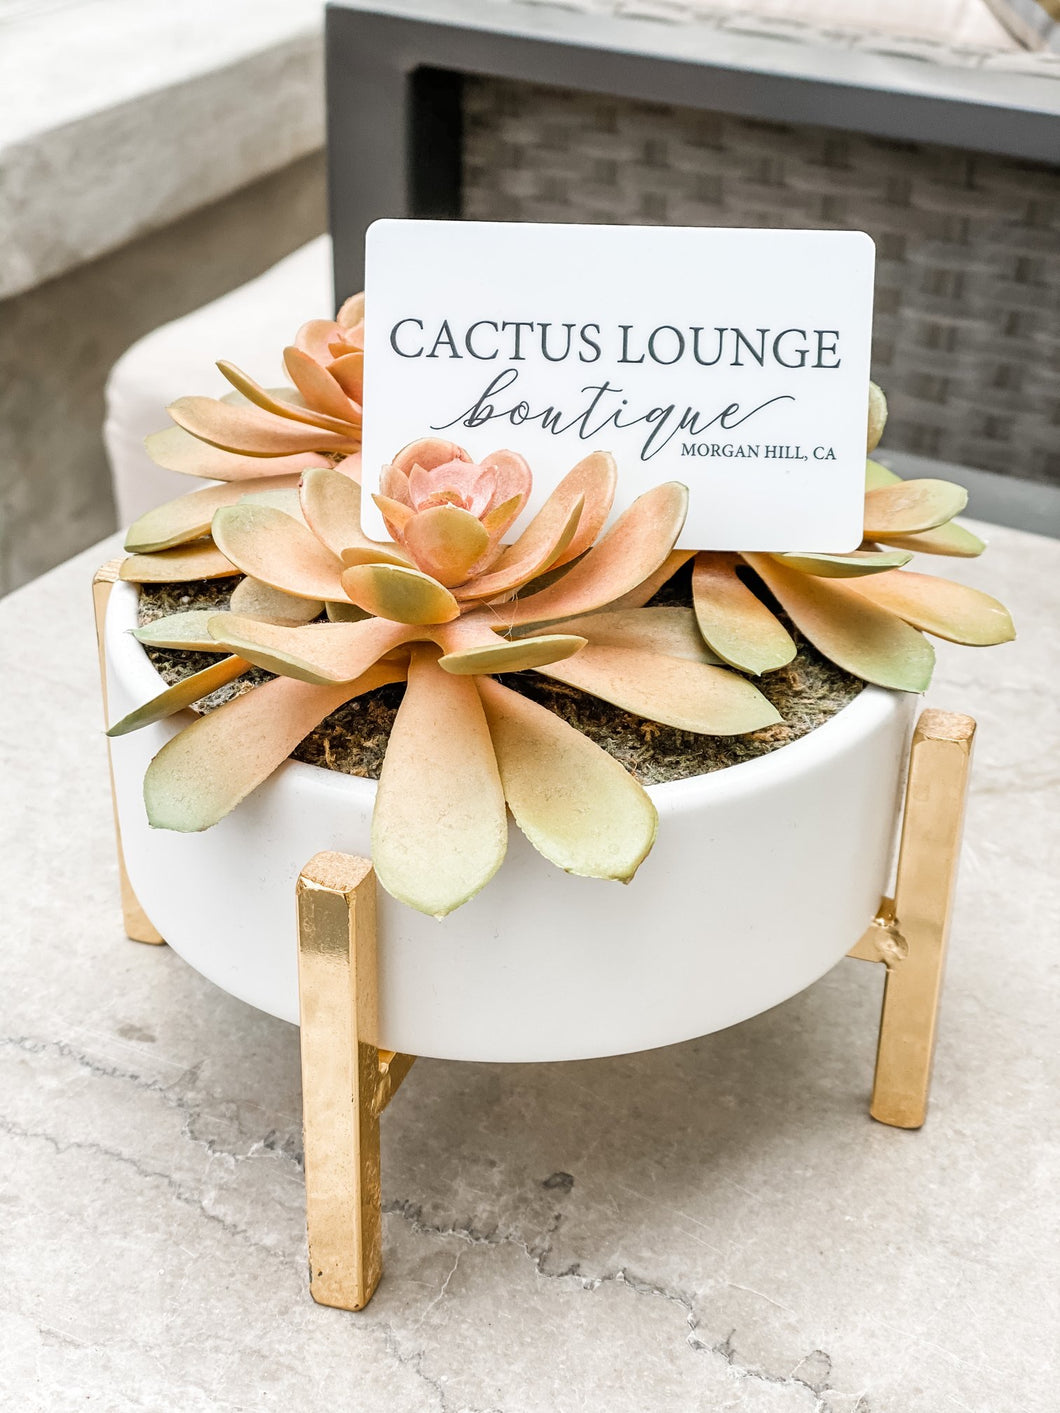 Cactus Lounge Boutique Physical Gift Card - $50 - Cactus Lounge Boutique